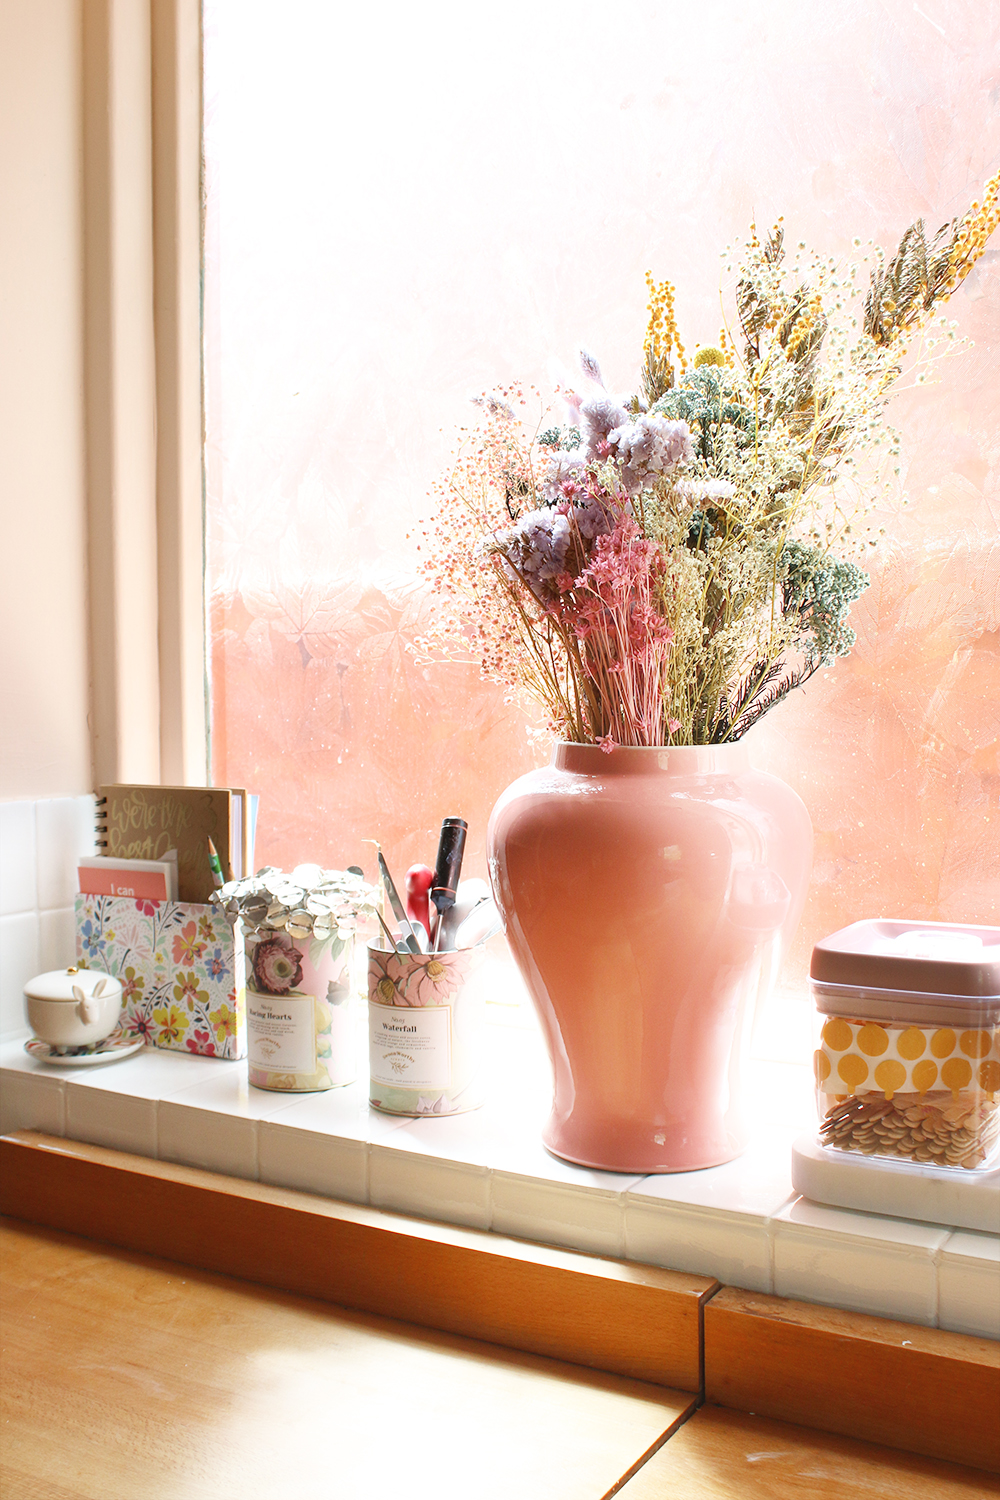 window sill recess in peach with dried flowers and supplies